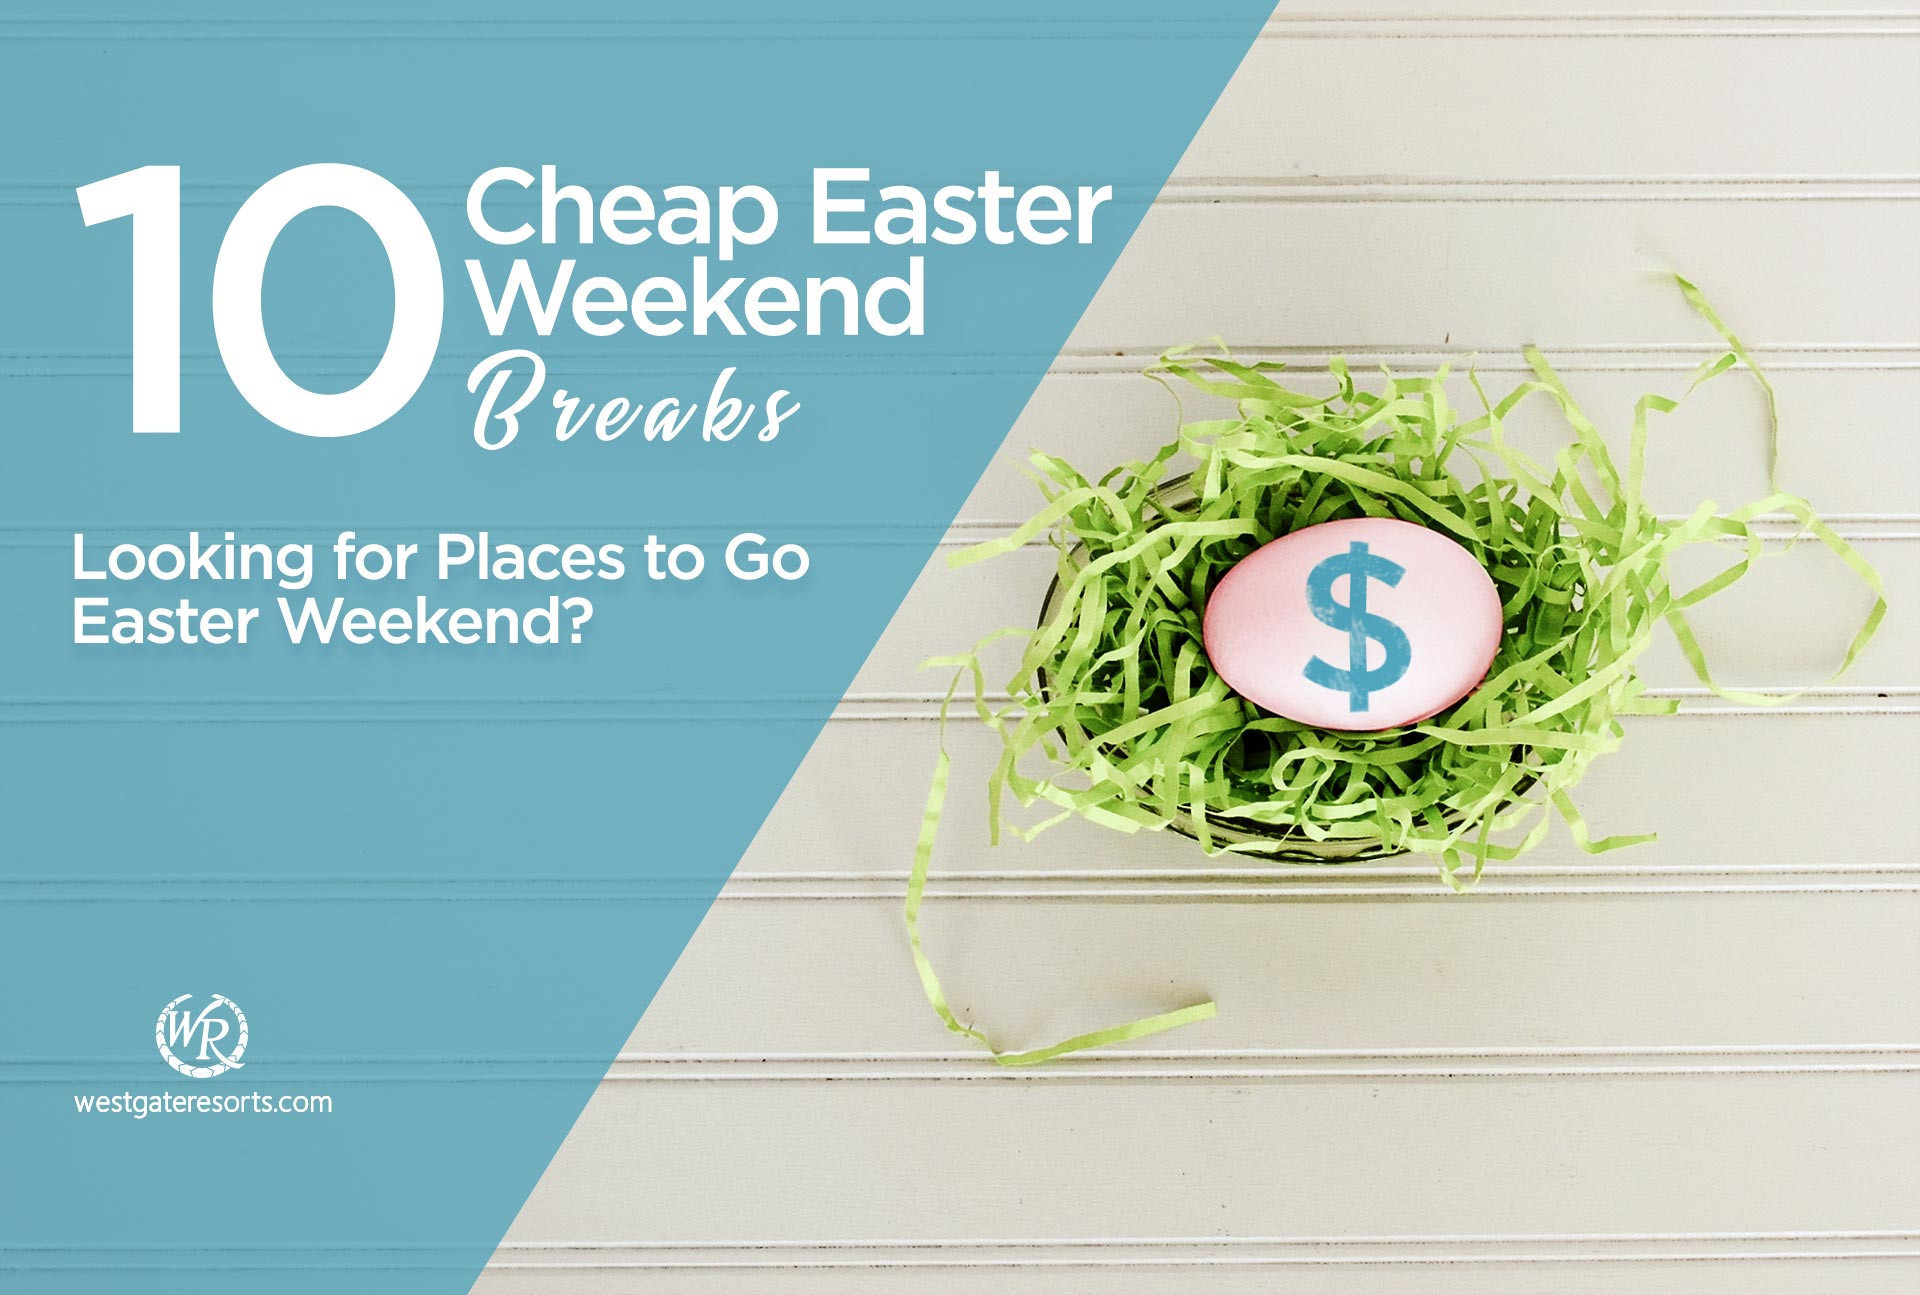 Cheap Easter Weekend Breaks for 2018 | Places to Go Easter Weekend | Westgate Resorts